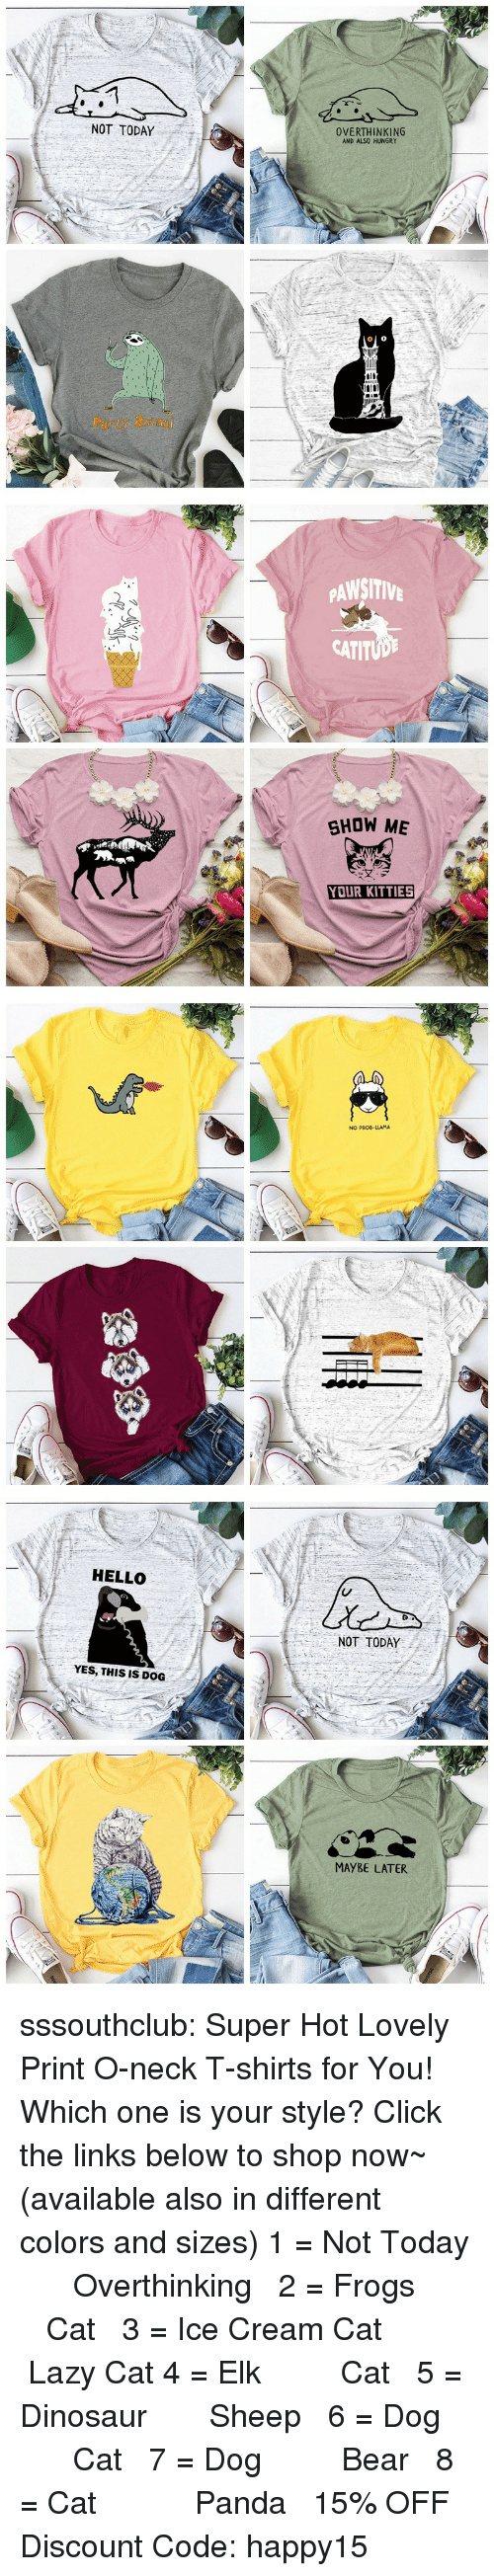 Click, Dinosaur, and Hello: NOT TODAY  OVERTHINKING  AND ALSO HUNGRY  Party atm   PAWSITIV  CATITUD  SHOW ME  YOUR KITTIES   NO PROD-LLAMA   HELLO  NOT TODAY  YES, THIS IS DOG  MAYBE LATER sssouthclub: Super Hot Lovely Print O-neck T-shirts for You! Which one is your style? Click the links below to shop now~ (available also in different colors and sizes) 1 = Not Today  ☆★  Overthinking  2 = Frogs   ☆★  Cat  3 = Ice Cream Cat  ☆★  Lazy Cat  4 = Elk   ☆★  Cat  5 = Dinosaur  ☆★  Sheep  6 = Dog   ☆★  Cat  7 = Dog   ☆★  Bear  8 = Cat    ☆★  Panda  15% OFF Discount Code: happy15